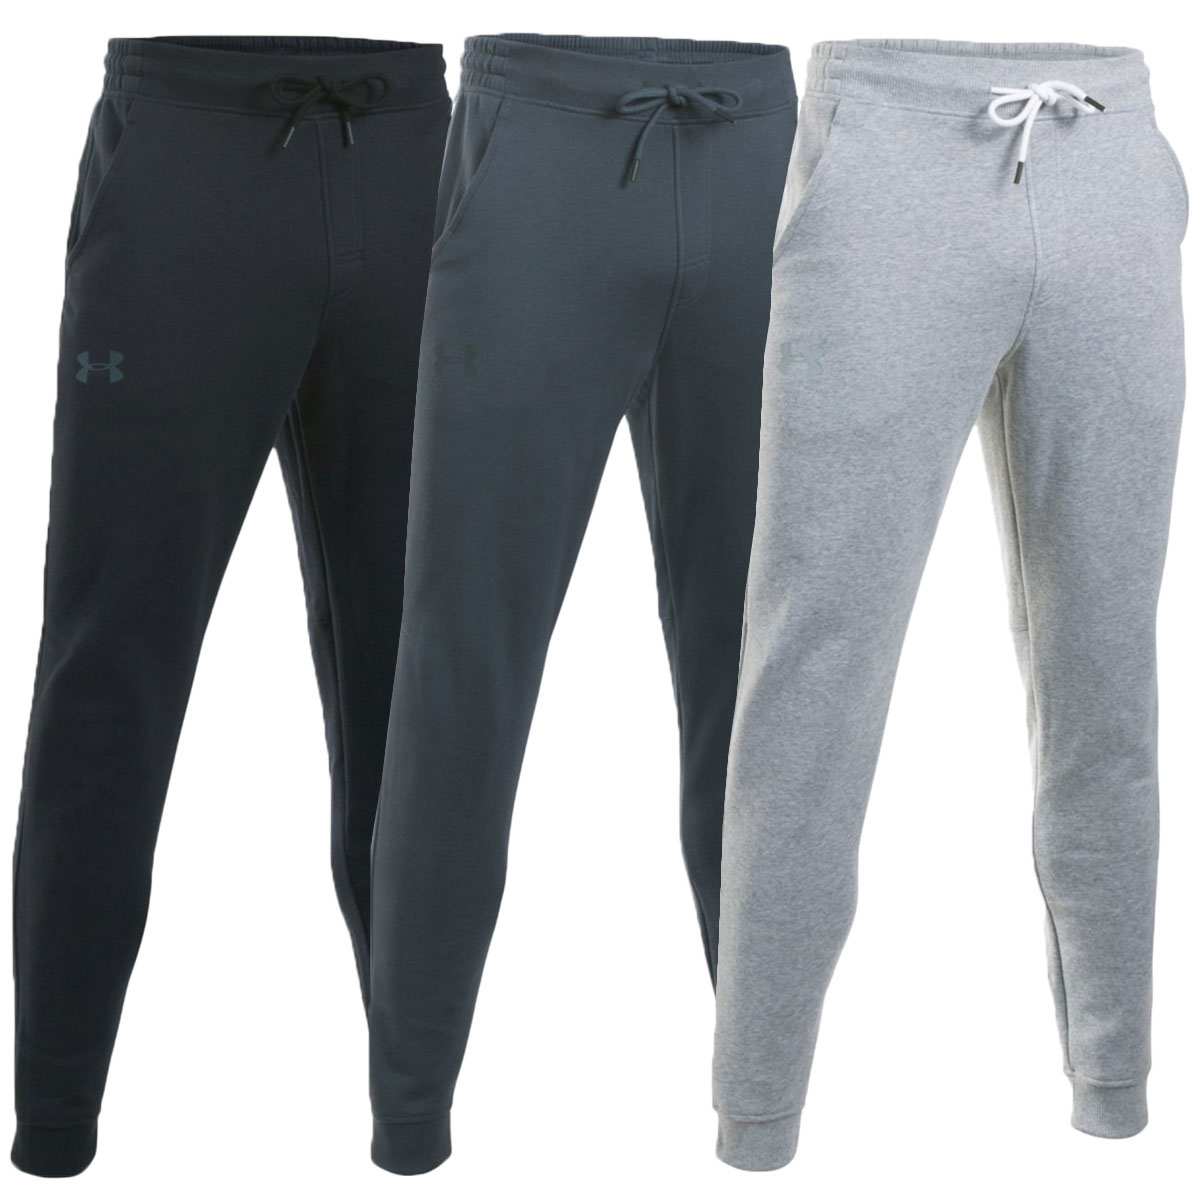 Details about Under Armour Mens Storm Rival Cotton Jogger Tapered Skinny  Jogging Bottoms 3e62e47067e0